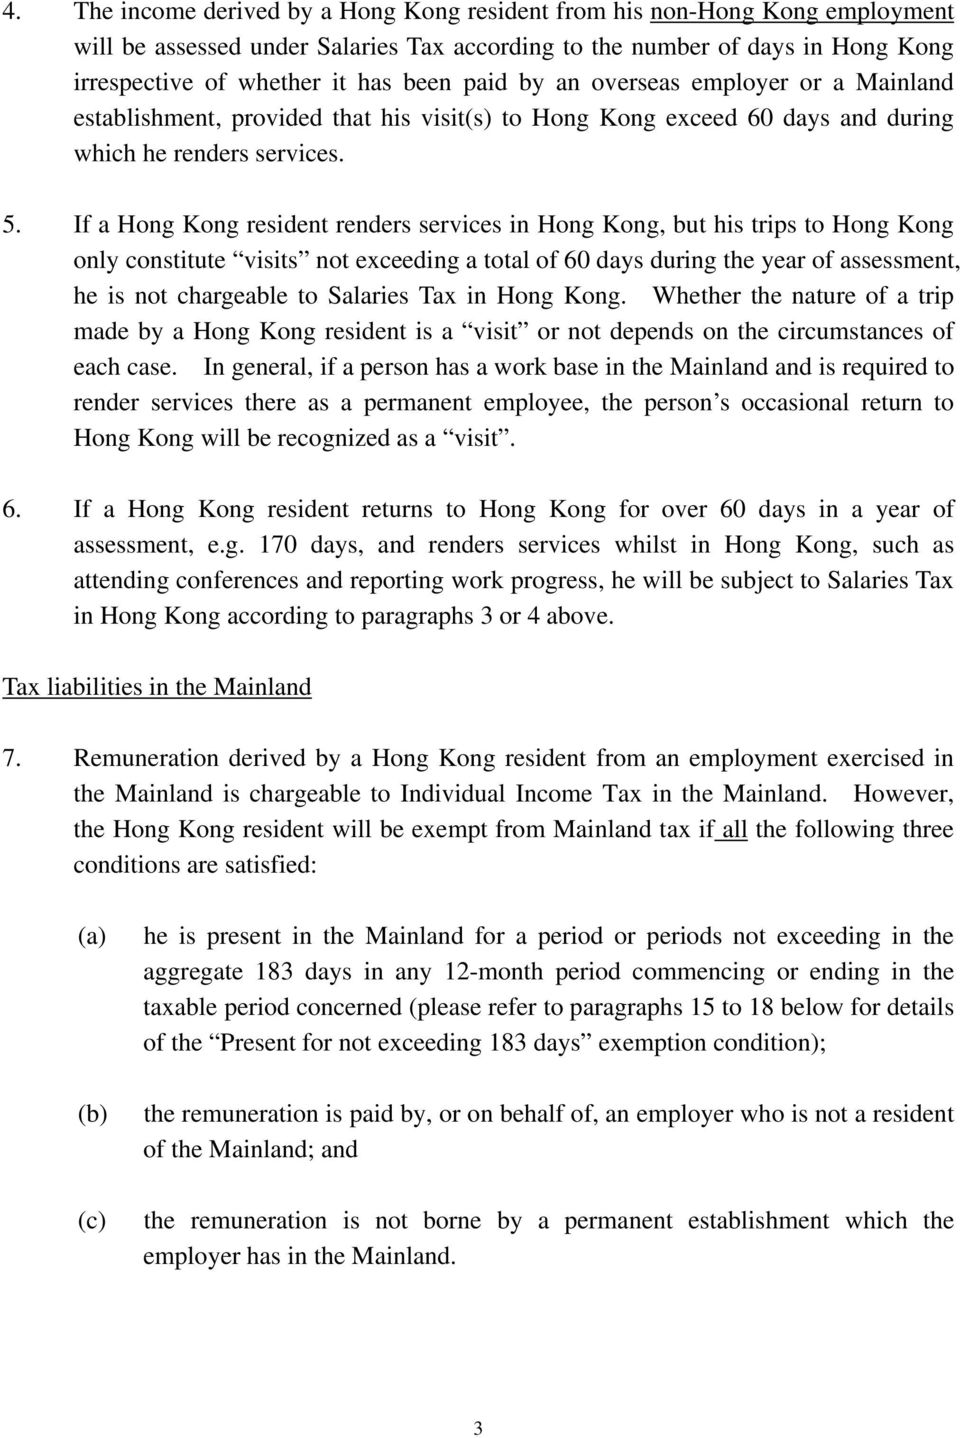 If a Hong Kong resident renders services in Hong Kong, but his trips to Hong Kong only constitute visits not exceeding a total of 60 days during the year of assessment, he is not chargeable to